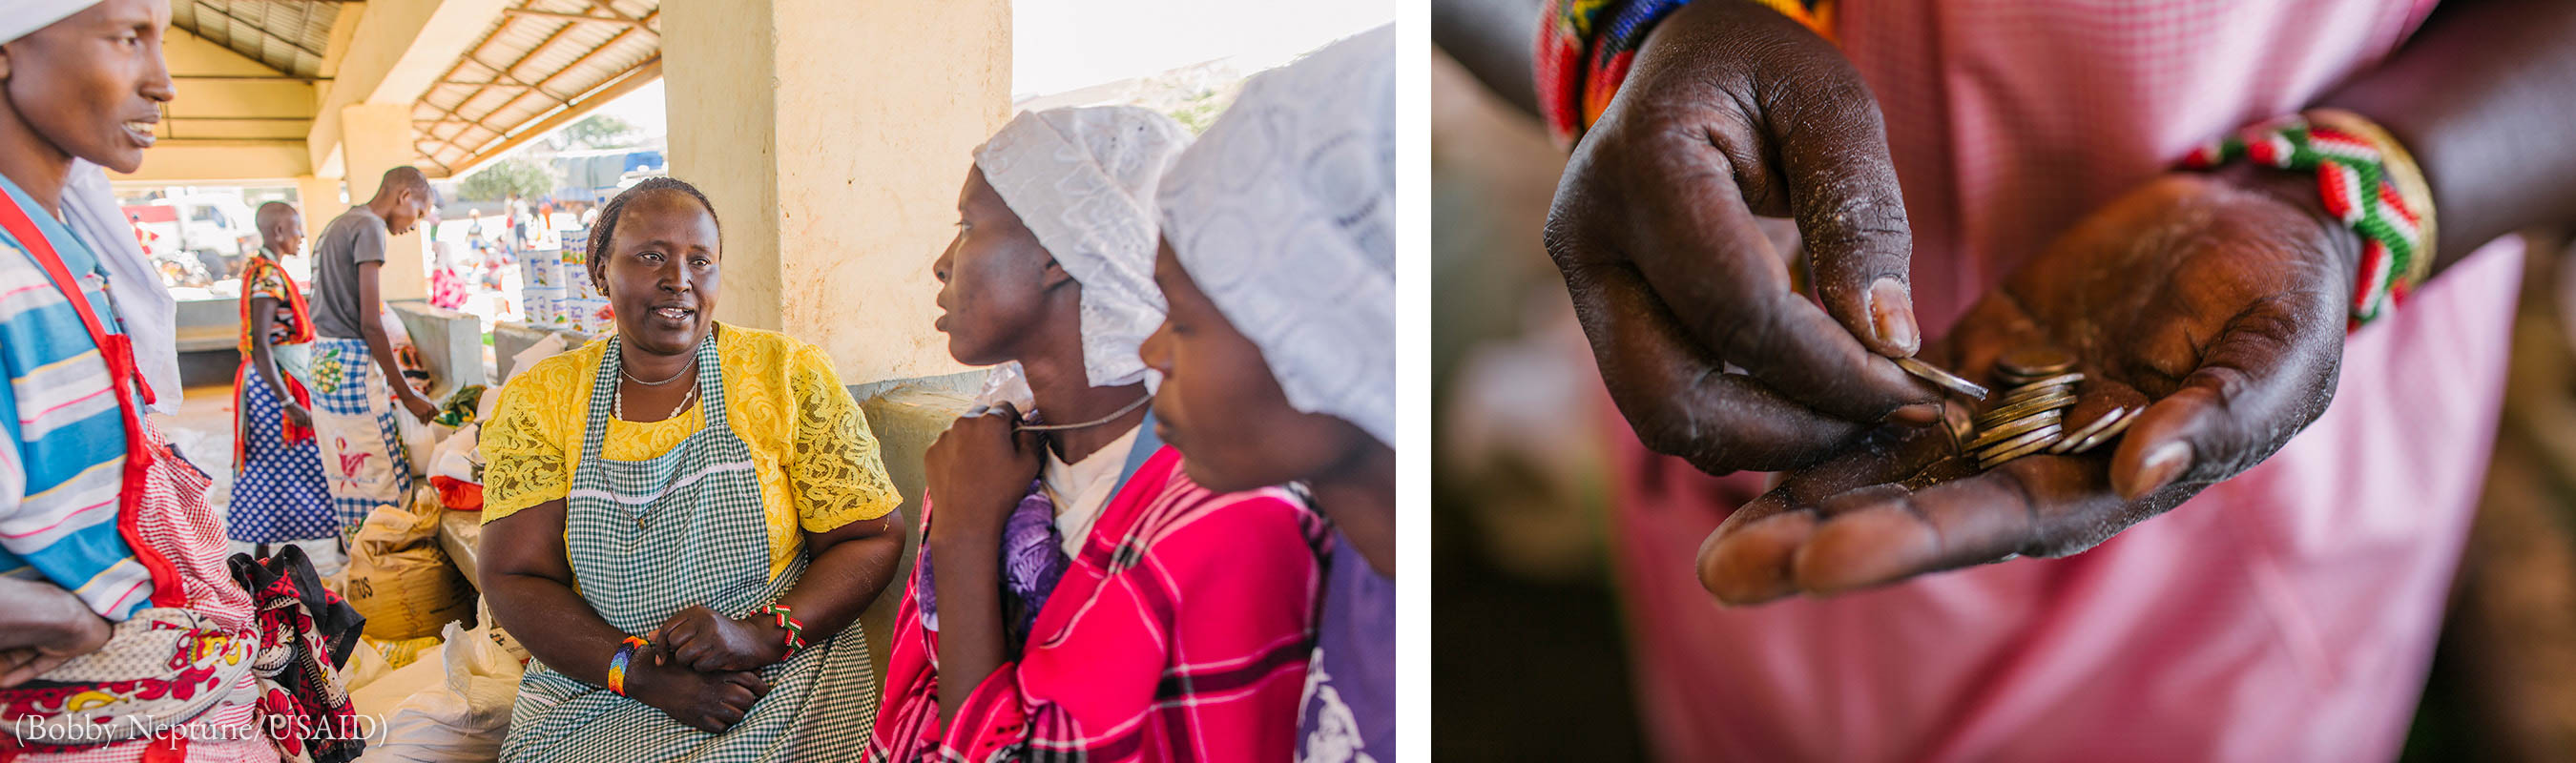 Left photo: Women in a small group talking at a market. Right photo: Hands holding out coins (Bobby Neptune/USAID)